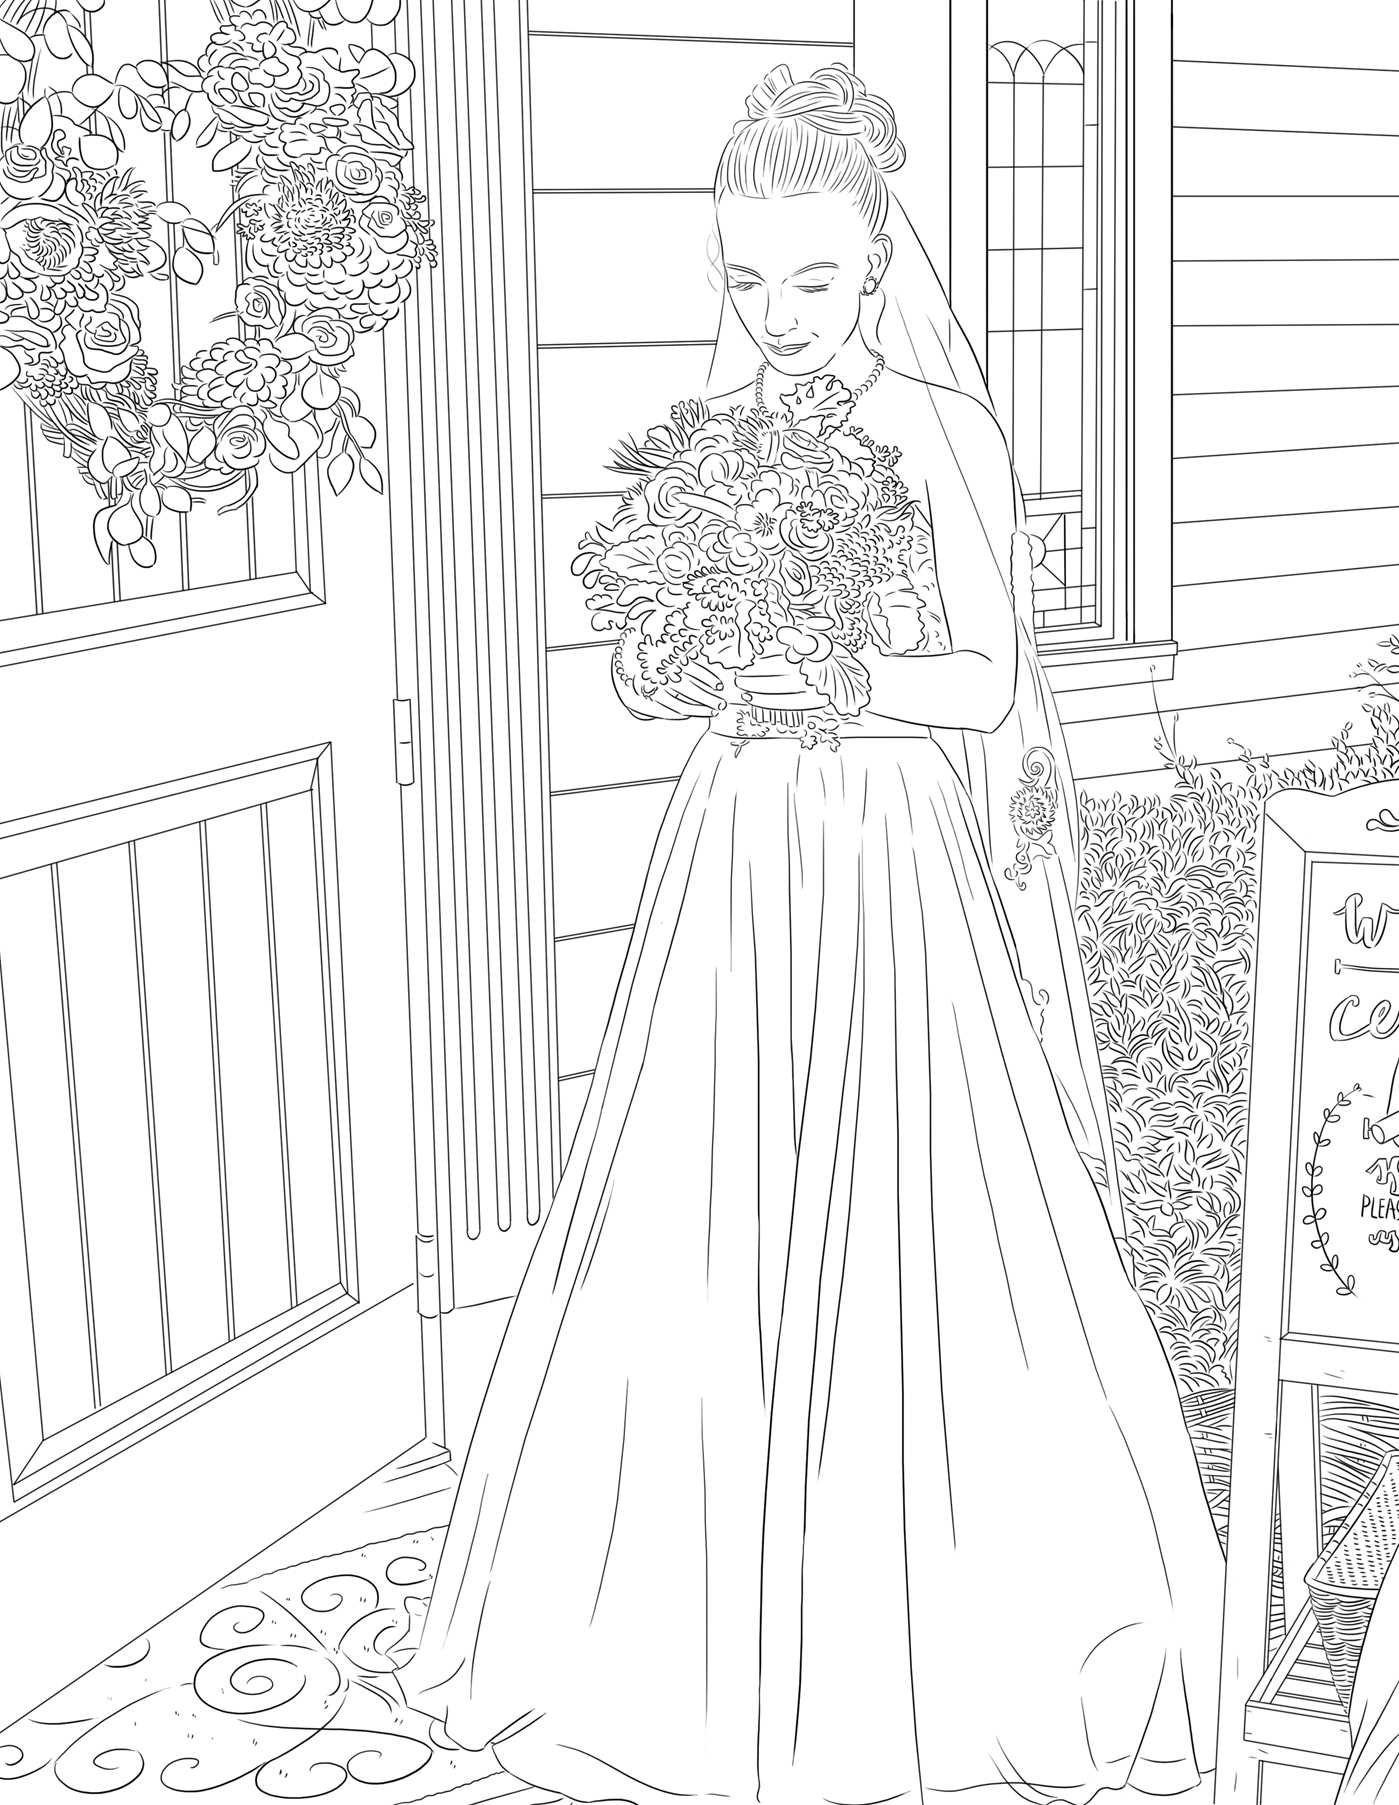 Coloring book wedding pictures - Amazon Com The Maci And Taylor Wedding Album An Adult Coloring Book 9781682613221 Maci Bookout Taylor Mckinney Books